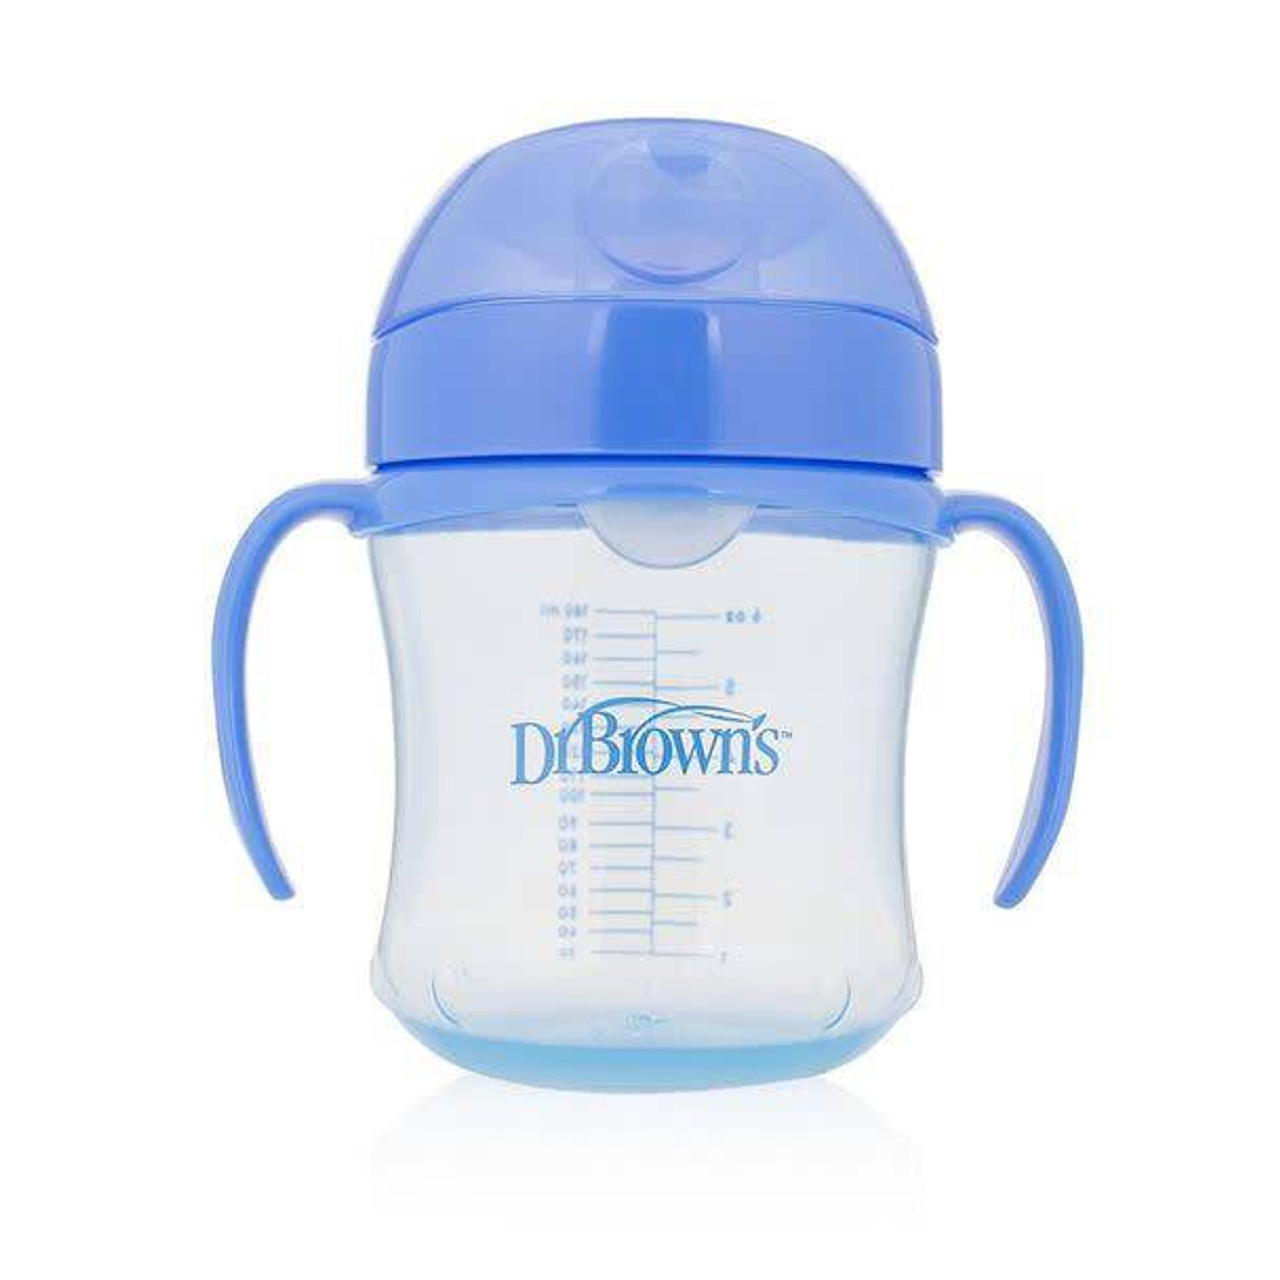 Dr Brow's Soft Spout Transition Cup 180ml at Baby Barn Discounts Dr Brown's soft spout transition cup is the best way to help baby make the easy transition from bottle to cup.